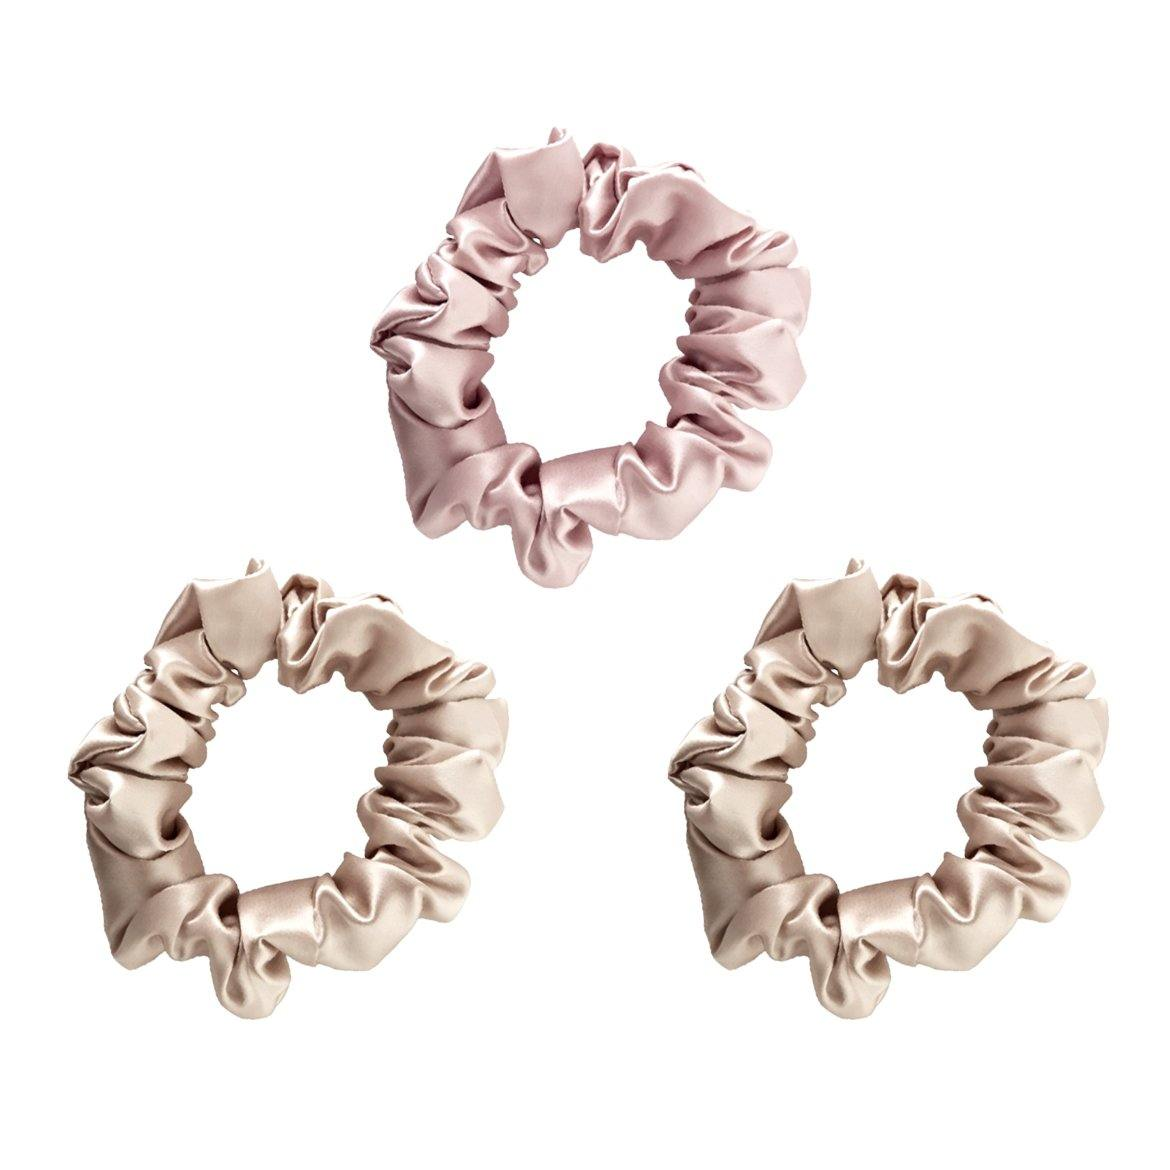 100% Silk Scrunchies - 3 Pack - Sequin Sand, LLC